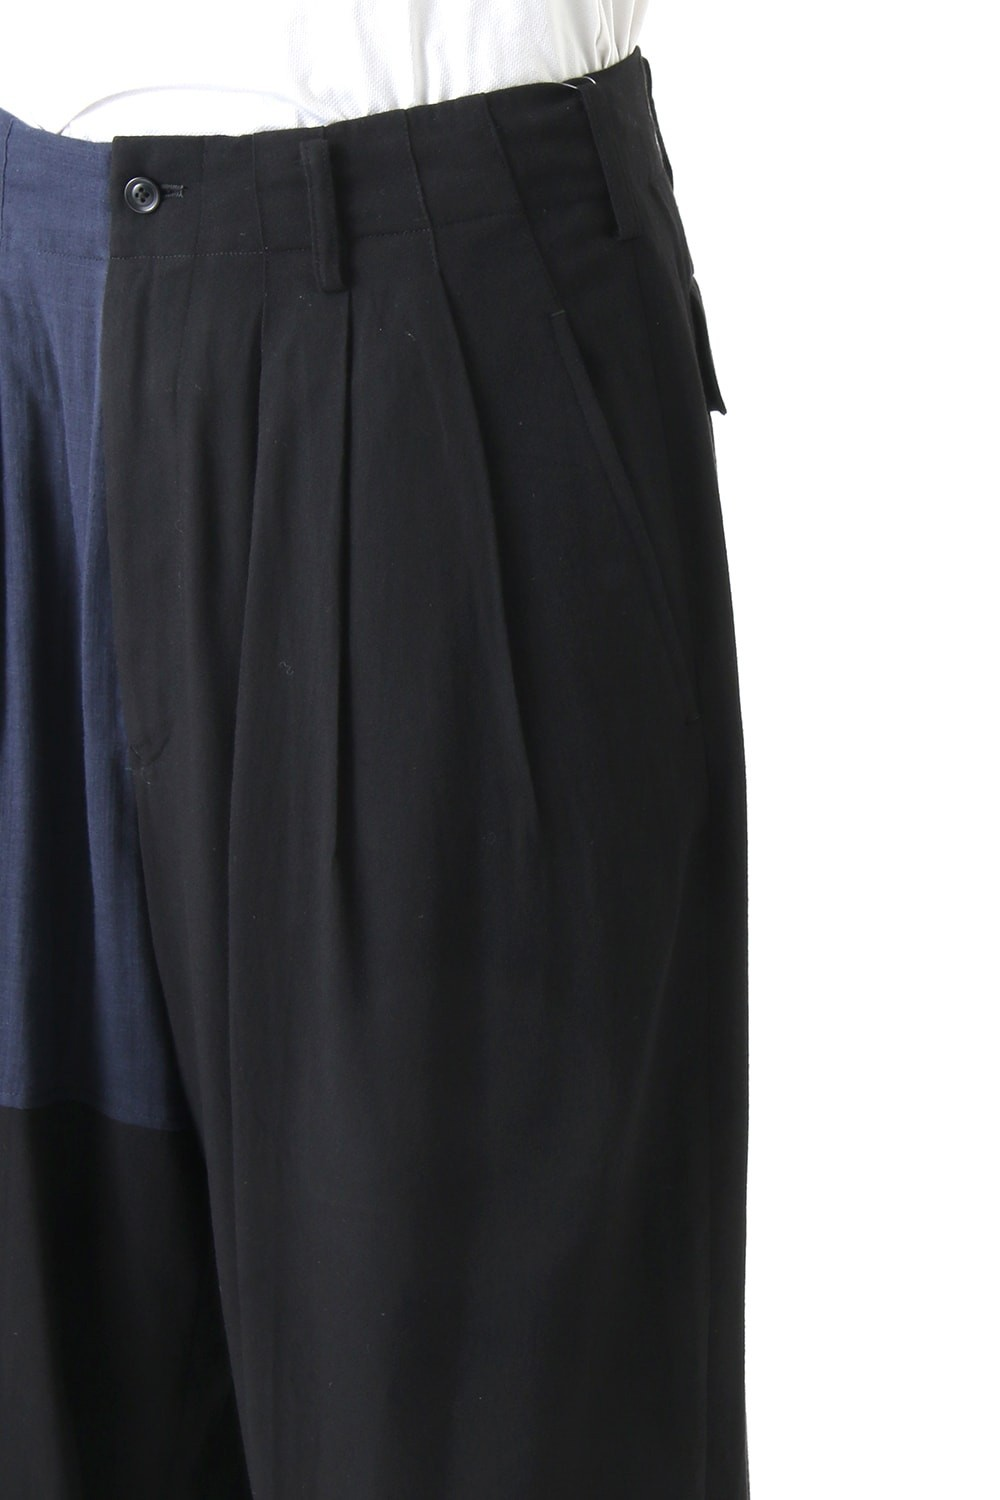 Thigh Patch Pants